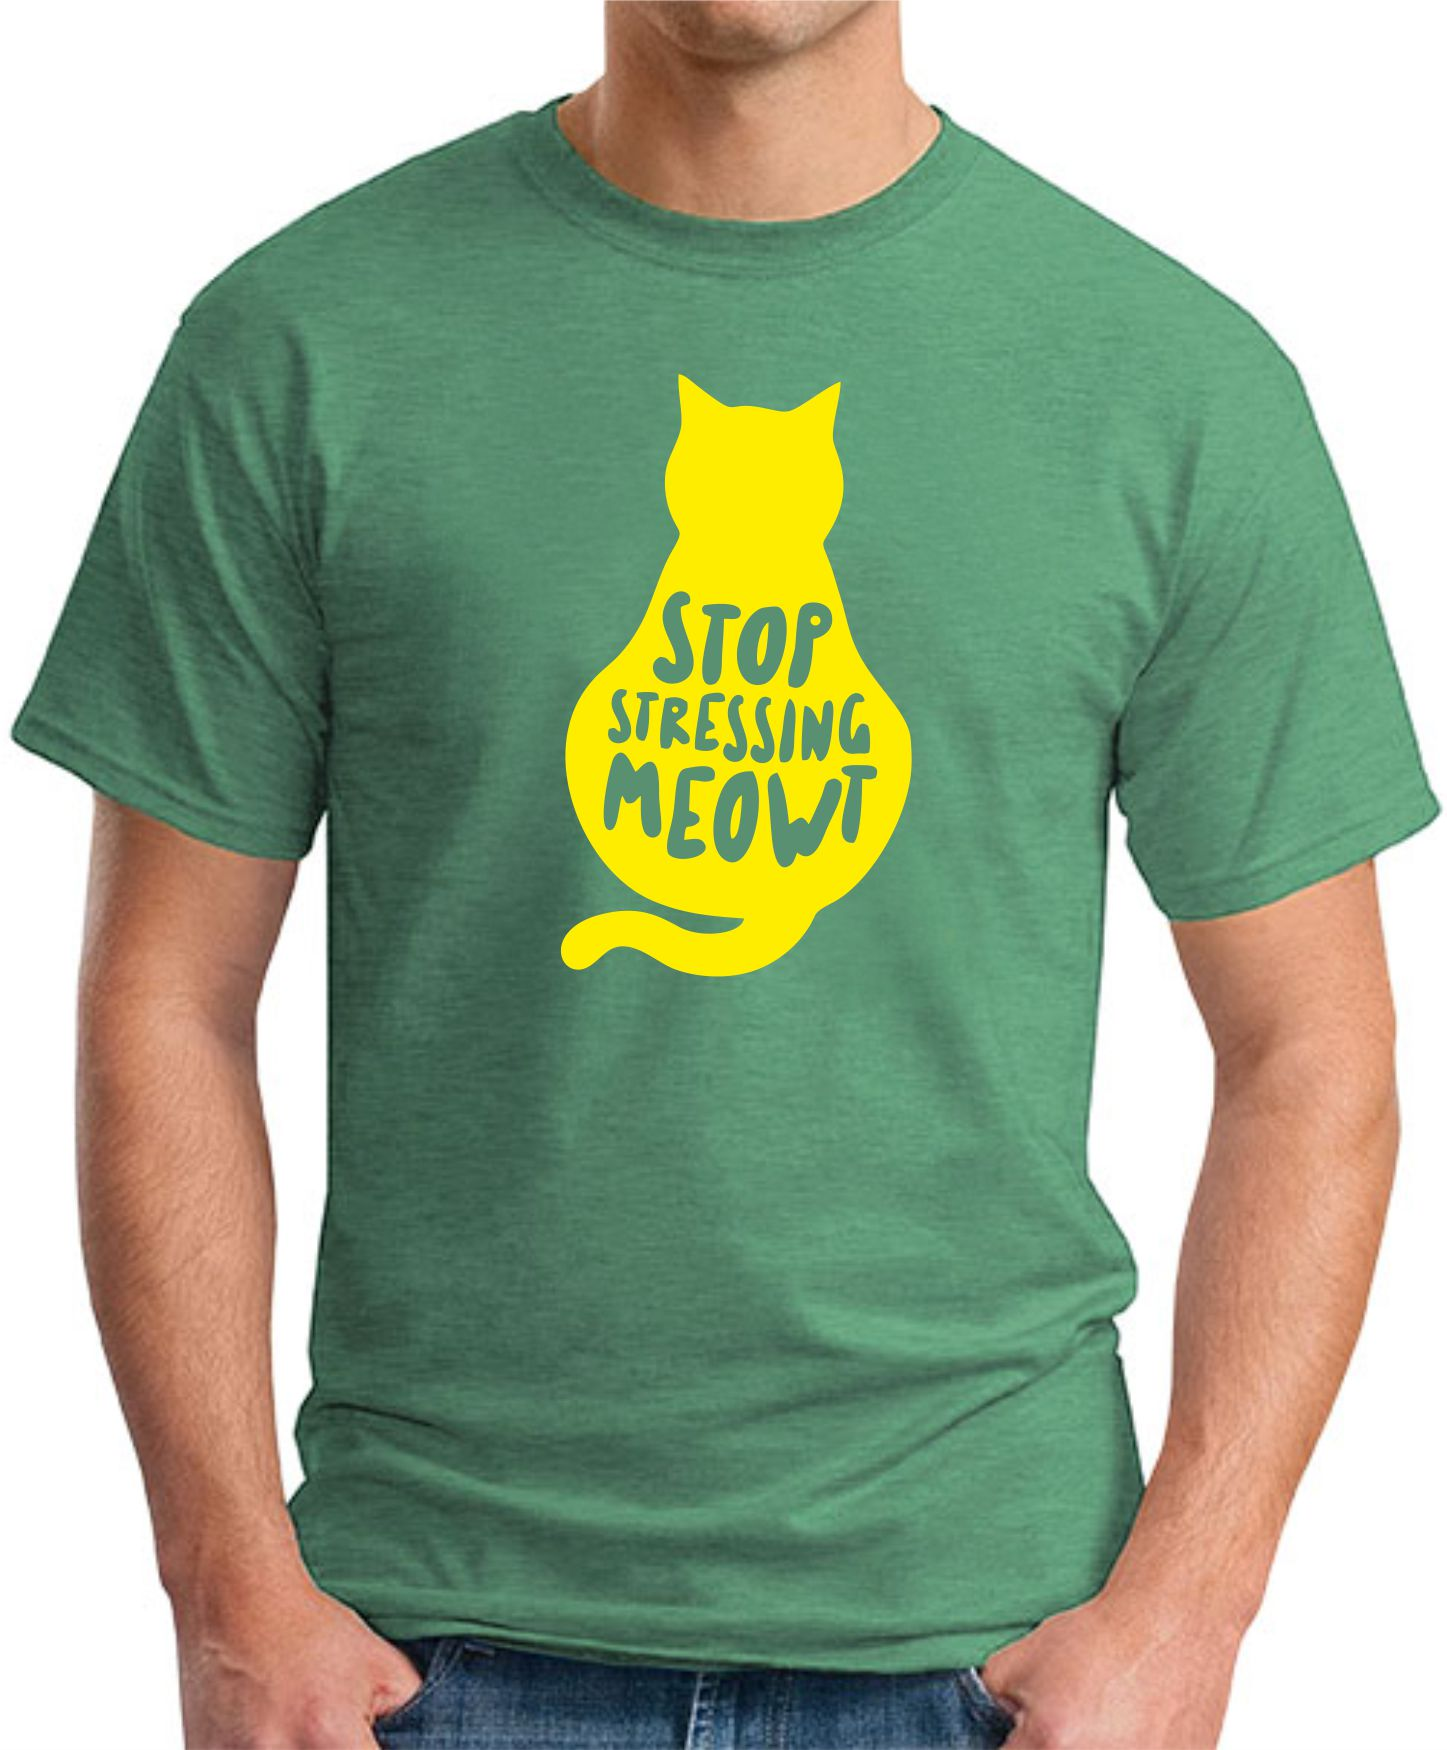 STOP STRESSING MEOWT GREEN